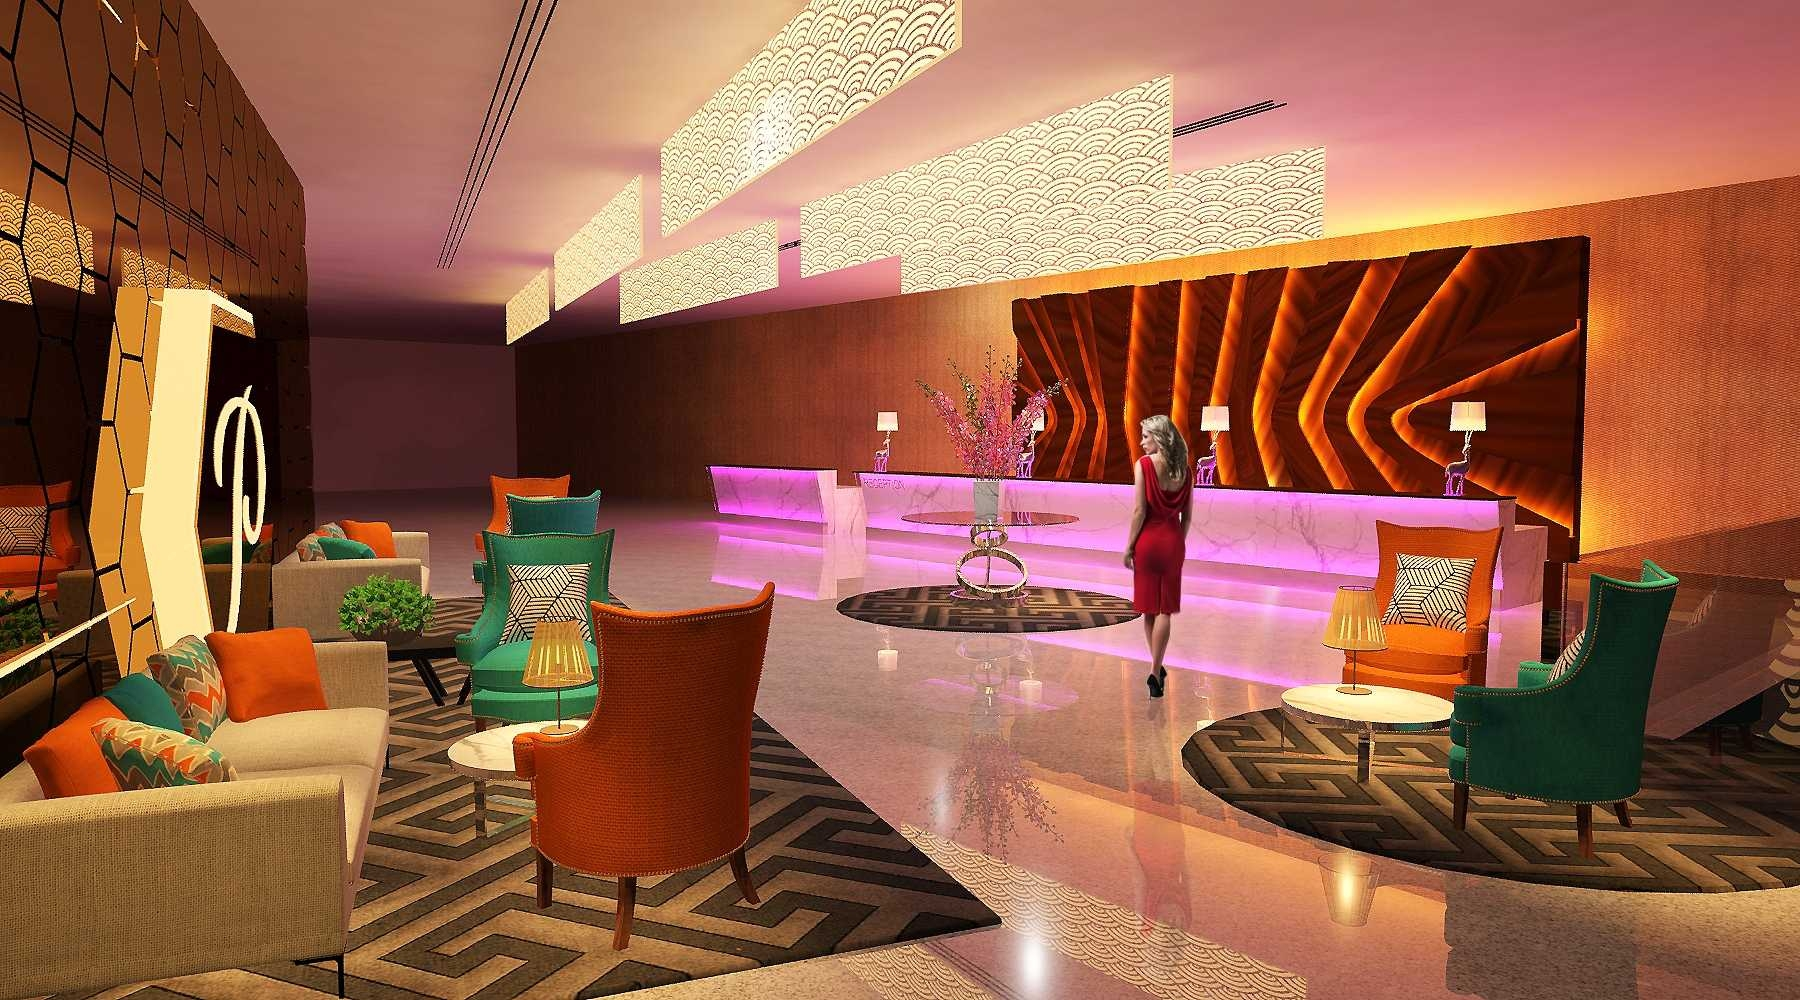 Hotel interior design premiere 3d visualization design at klang renof gallery Interior design visualization